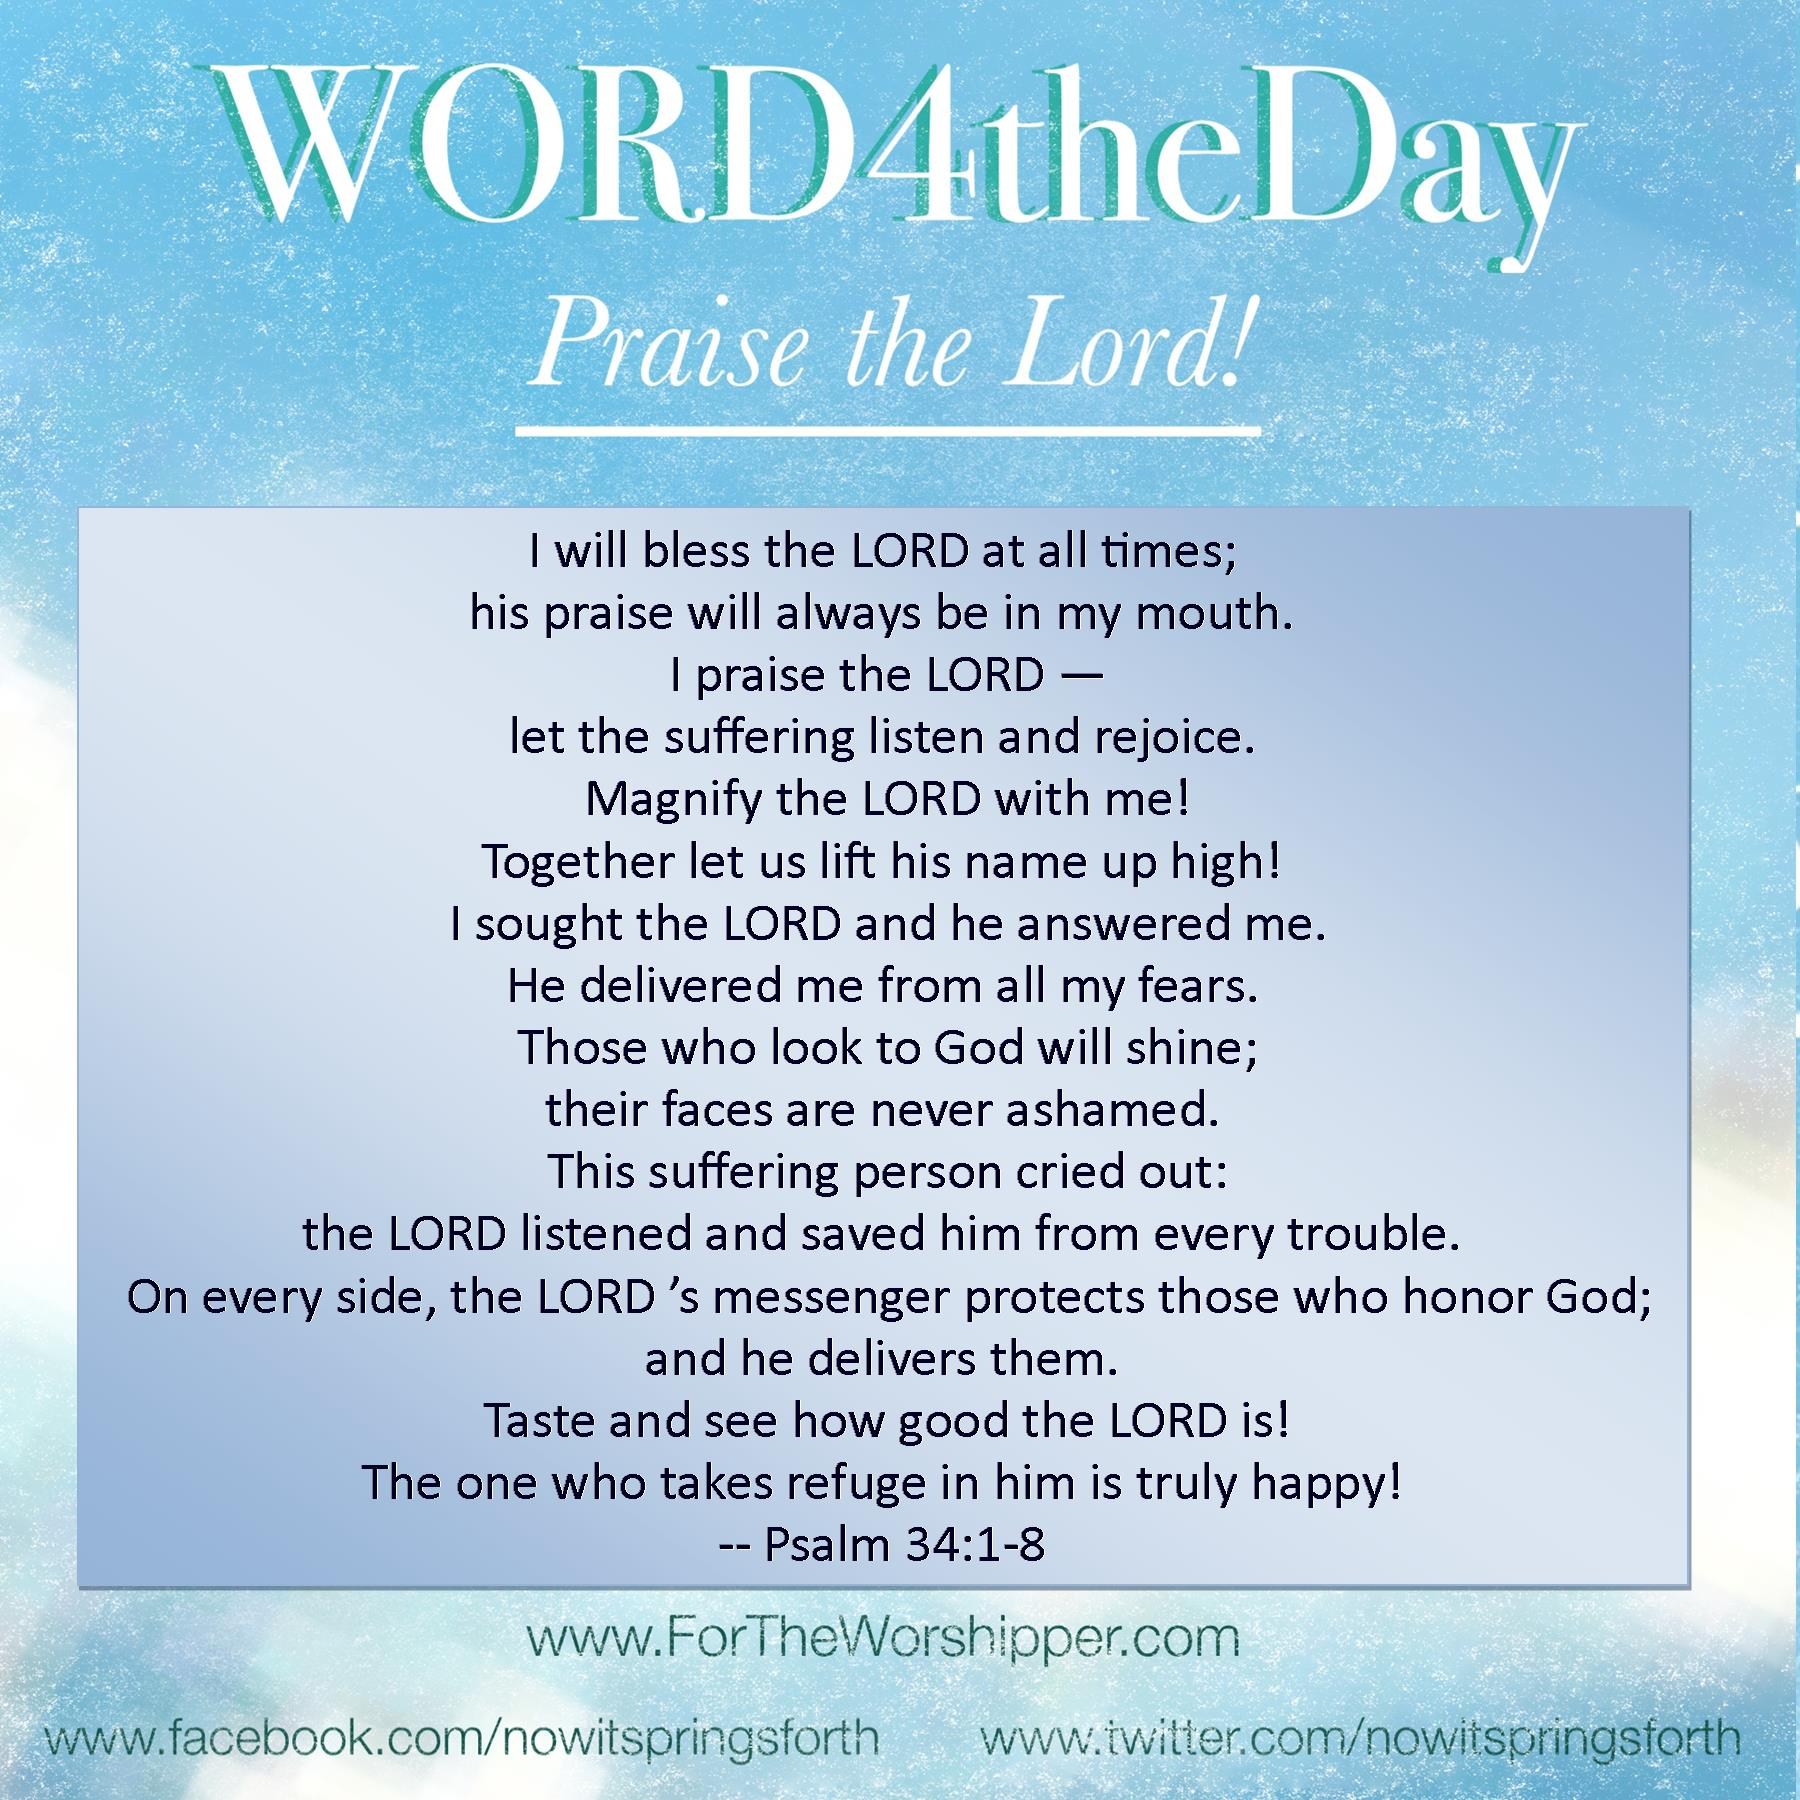 WORD4theDay 06 29 14 – For the Worshipper